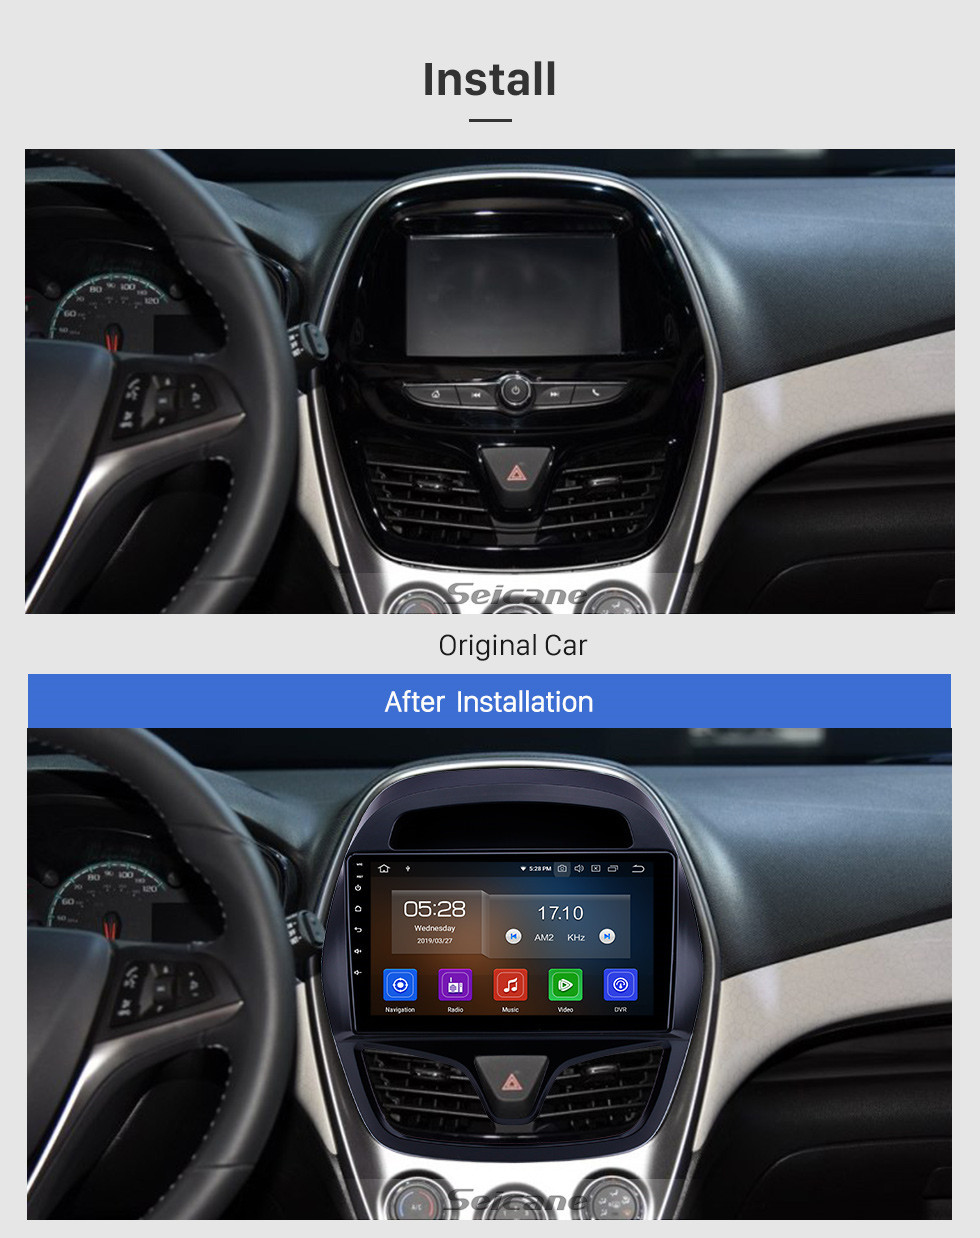 Seicane OEM 9 inch Android 10.0 Radio for 2015-2018 chevy Chevrolet Spark Beat Daewoo Martiz Bluetooth HD Touchscreen GPS Navigation Carplay support Rear camera